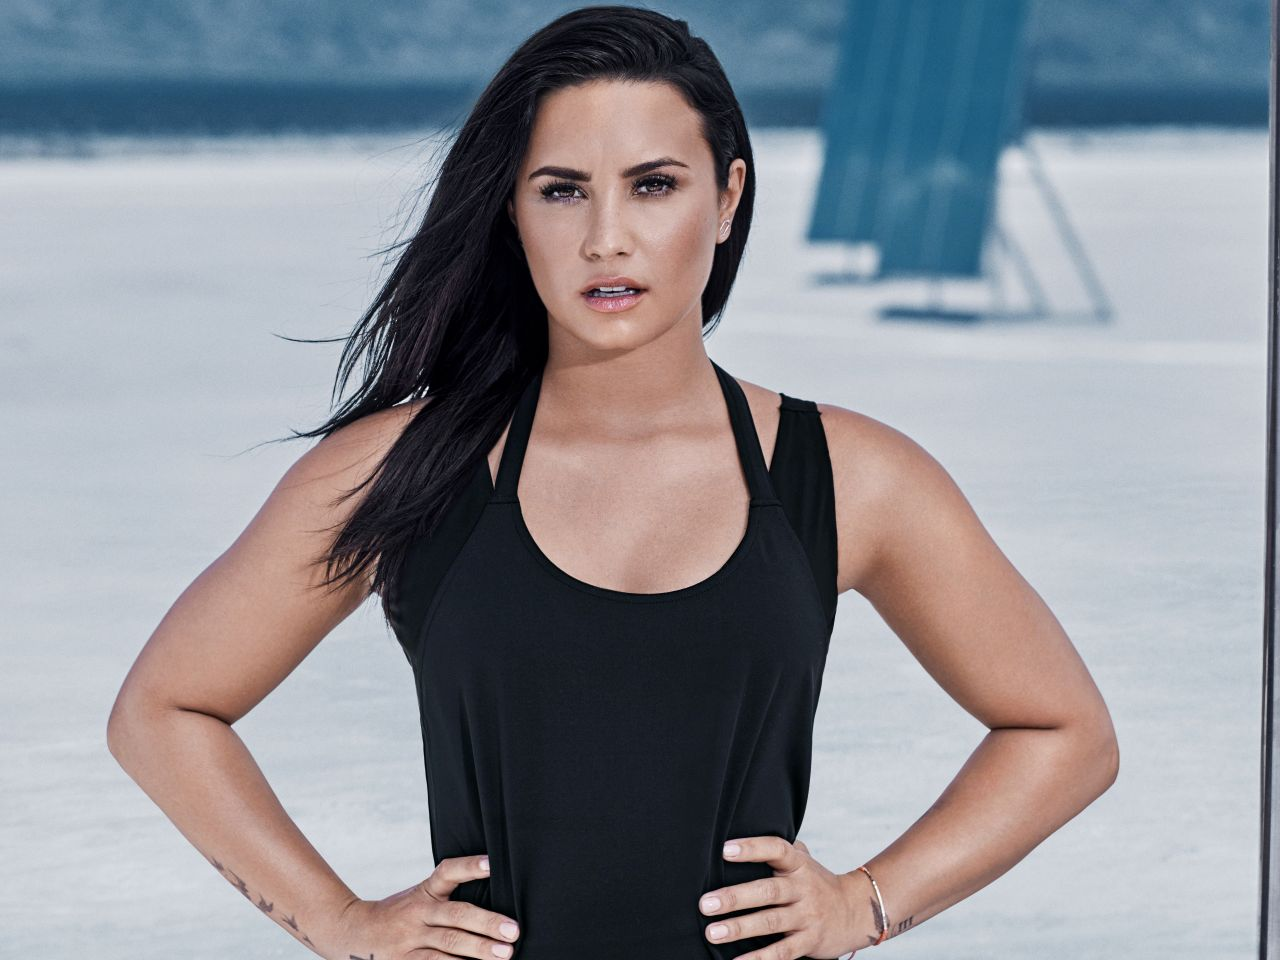 demi lovato - photo #44